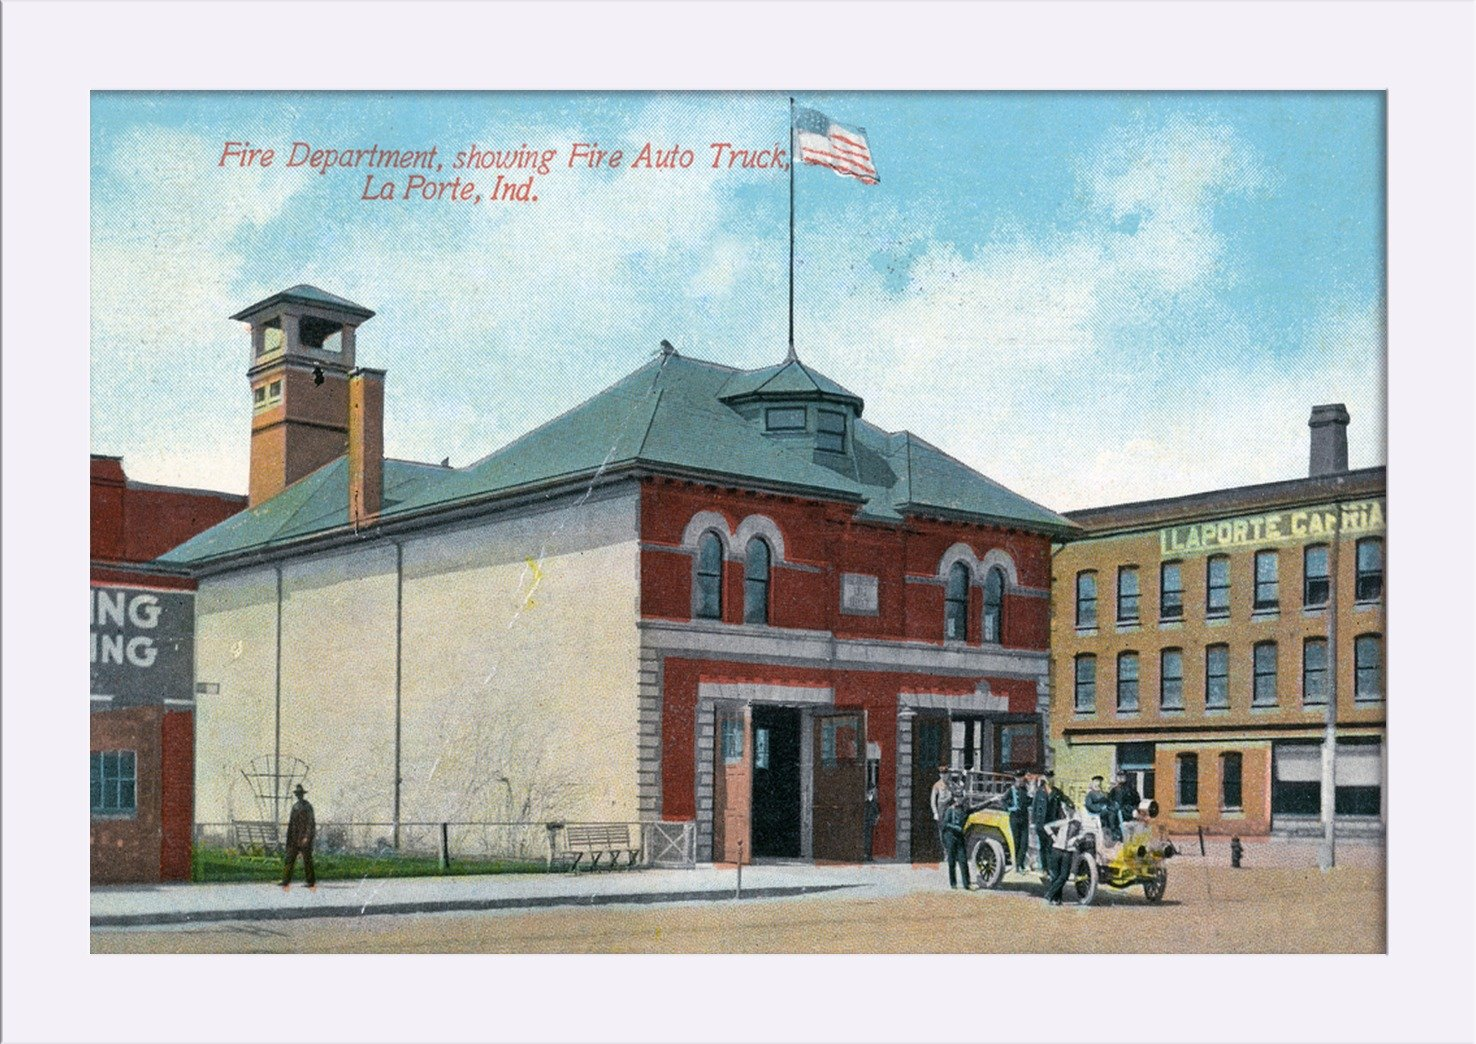 Amazon.com: La Porte, Indiana - Exterior View of Fire Dept and Fire Truck (18x11 3/8 Giclee Art Print, Gallery Framed, White Wood): Posters & Prints